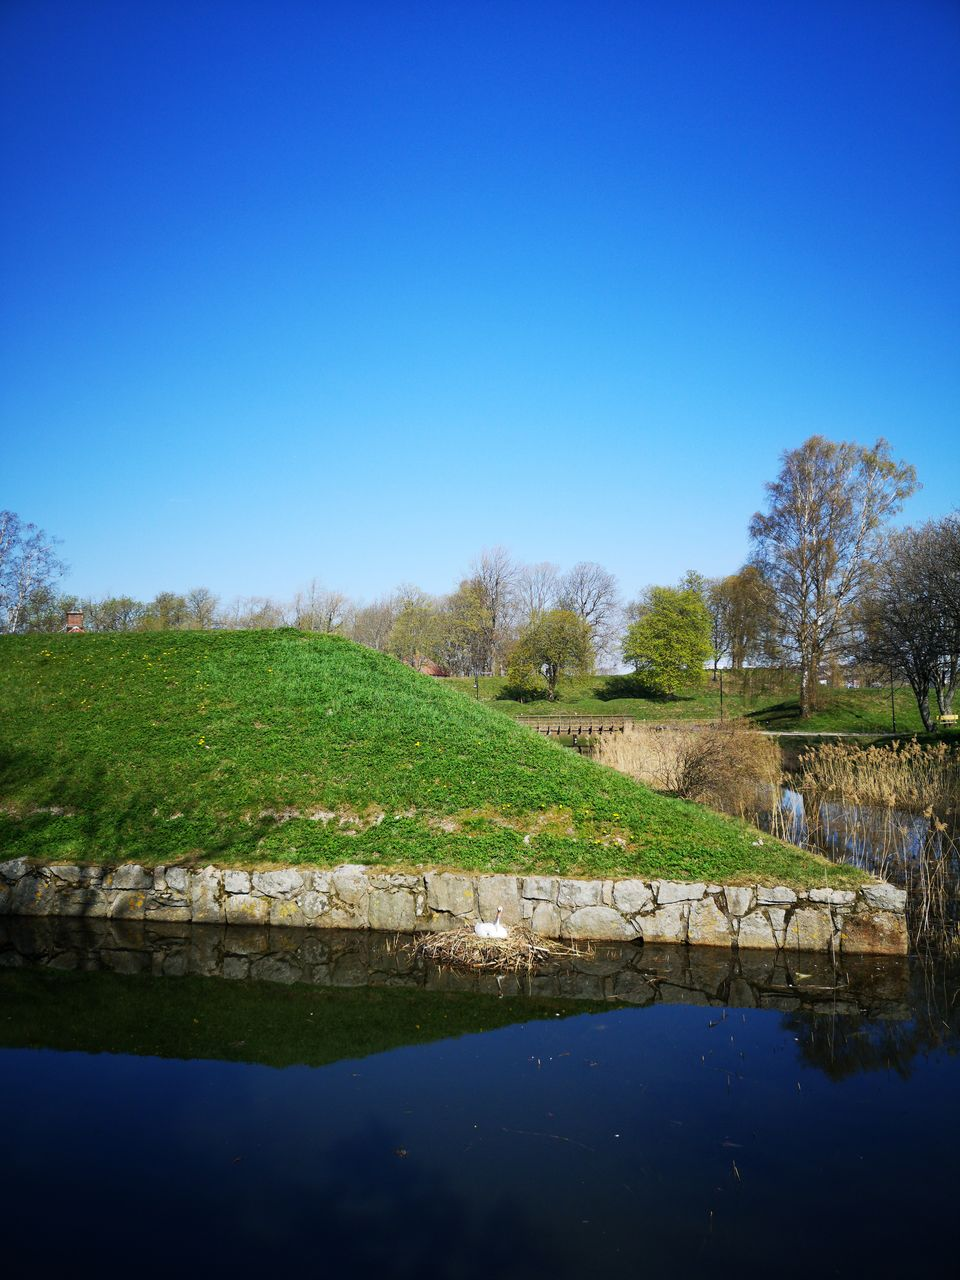 sky, water, plant, copy space, tranquility, tranquil scene, nature, reflection, tree, landscape, clear sky, scenics - nature, lake, blue, beauty in nature, day, grass, no people, green color, outdoors